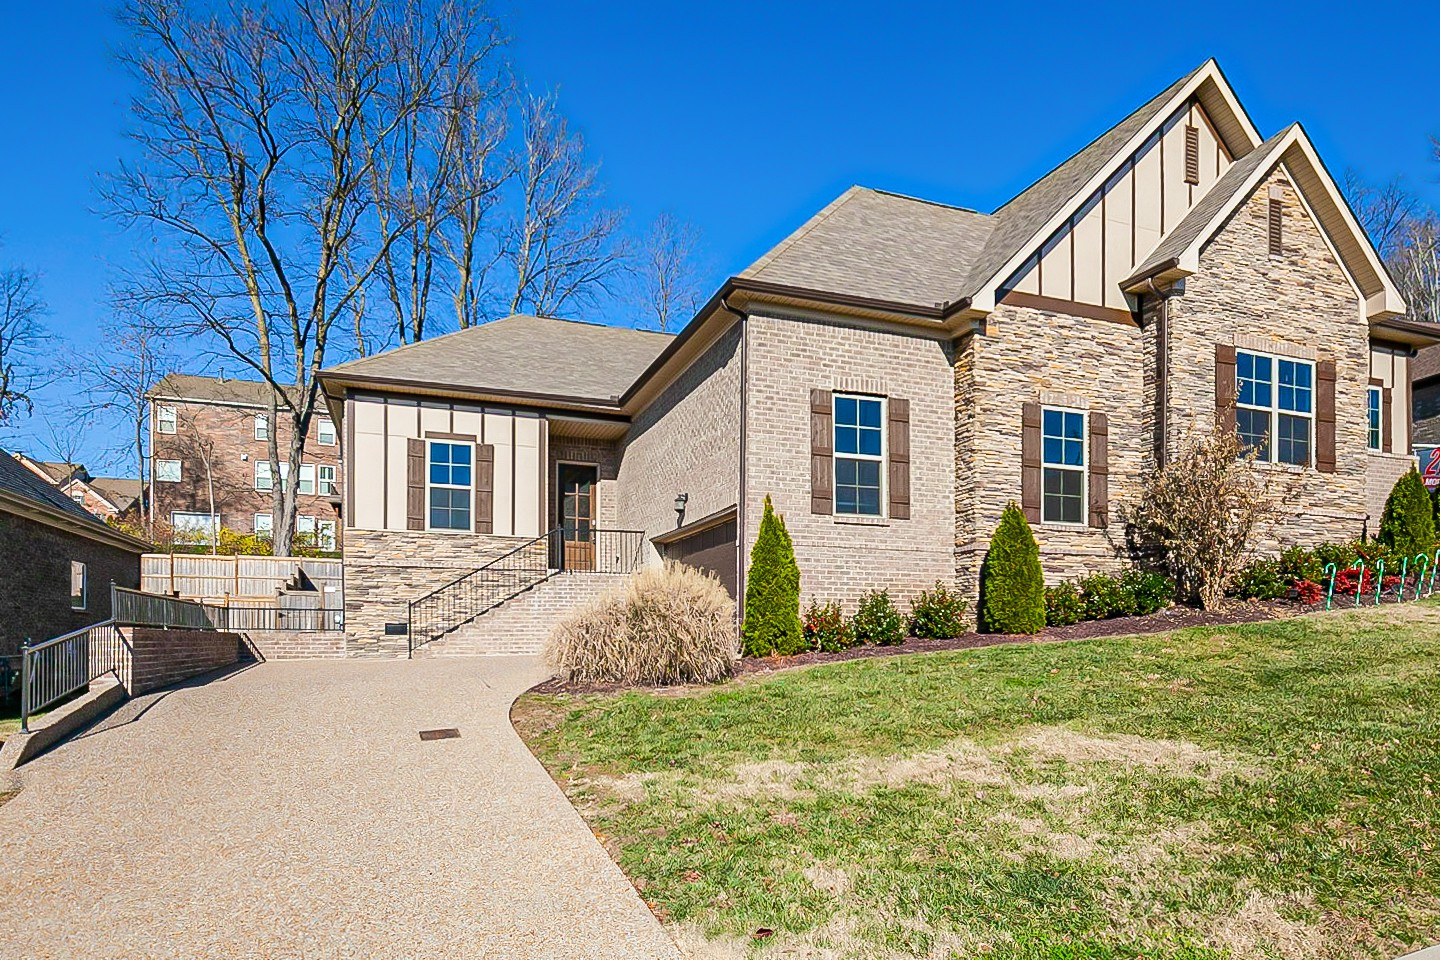 162 Cobbler Cir Property Photo - Hendersonville, TN real estate listing